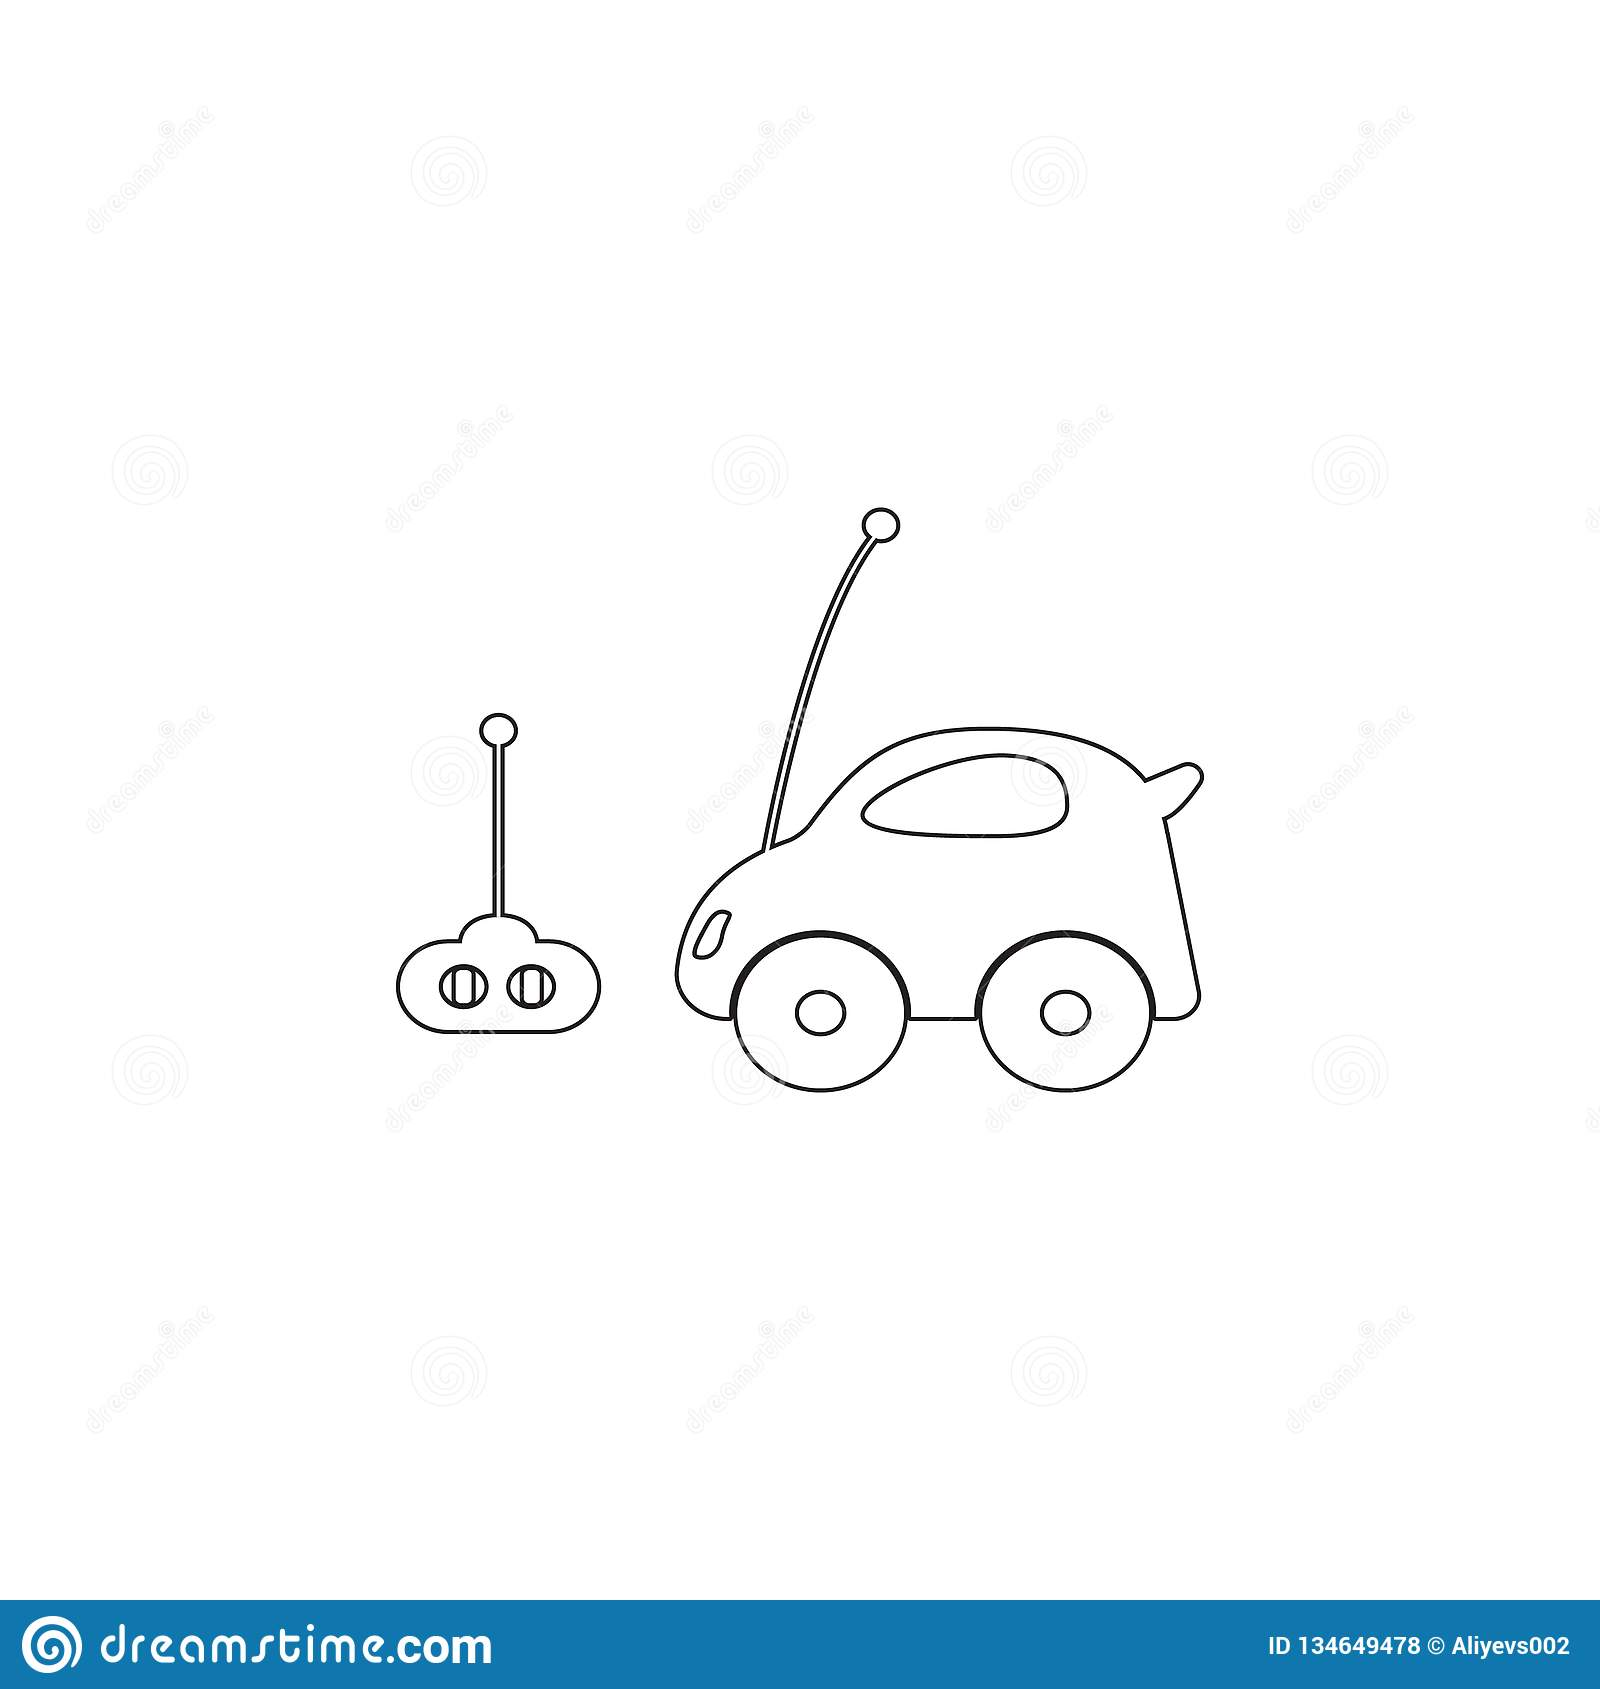 Car Toy With Remote Control Icon Toy Element Icon Premium Quality Graphic Design Icon Baby Signs Outline Symbols Collection Stock Illustration Illustration Of Child Antenna 134649478